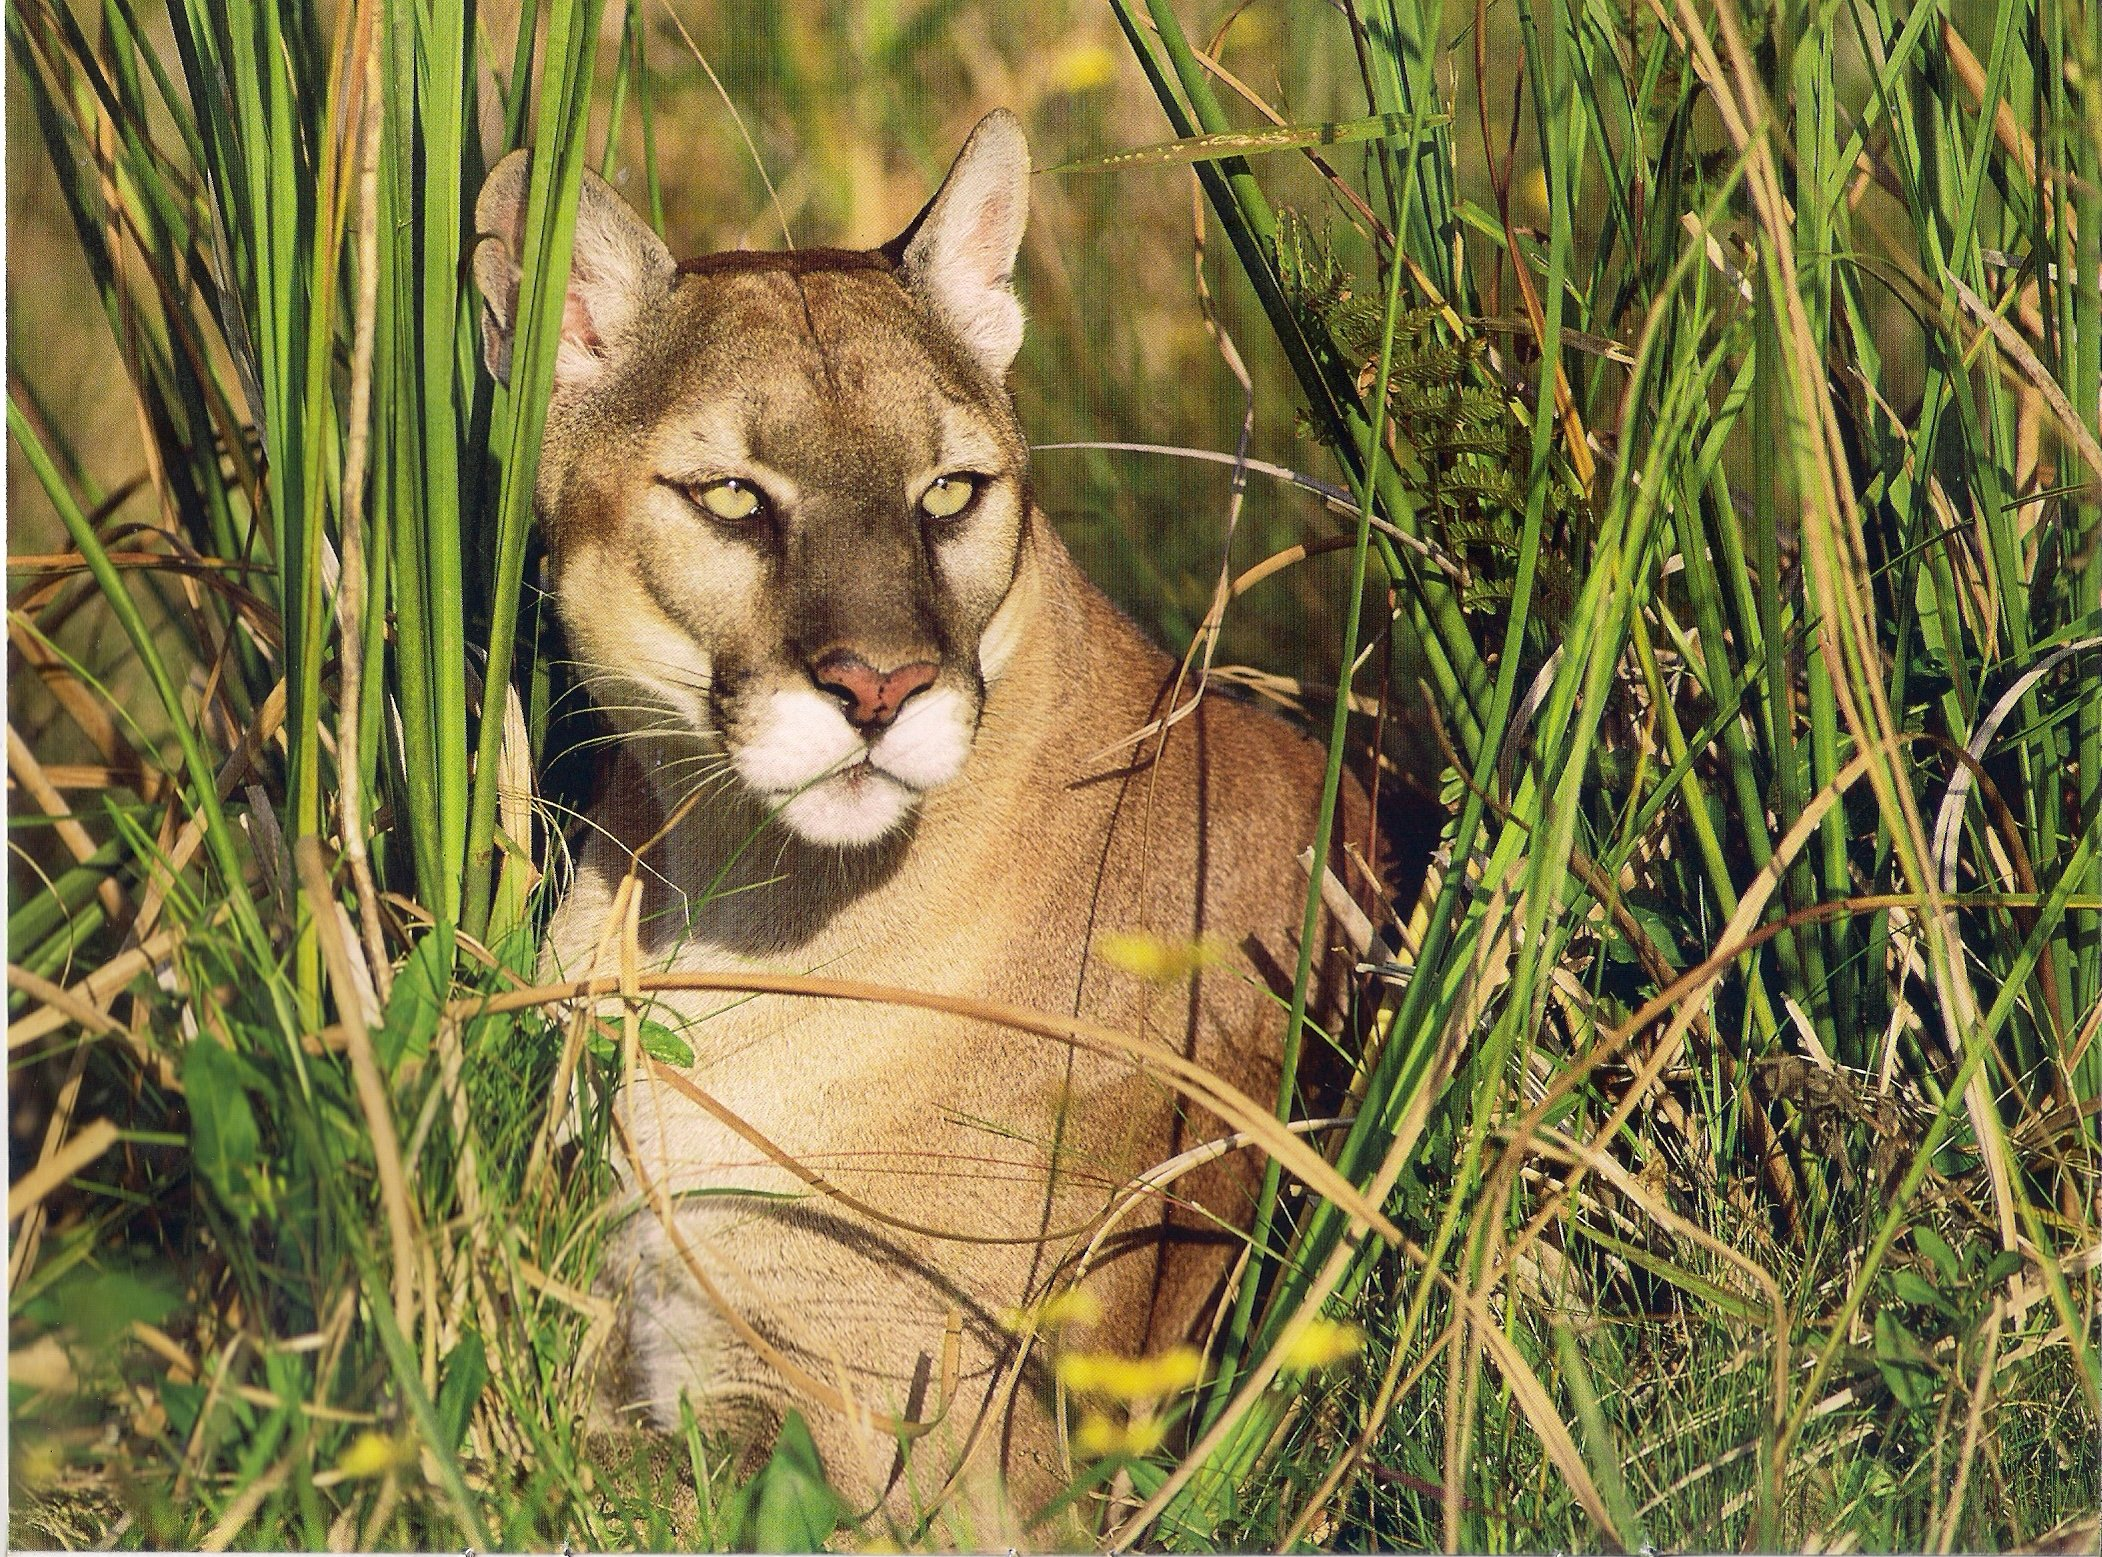 florida panther 1600x1200   DriverLayer Search Engine 2102x1557